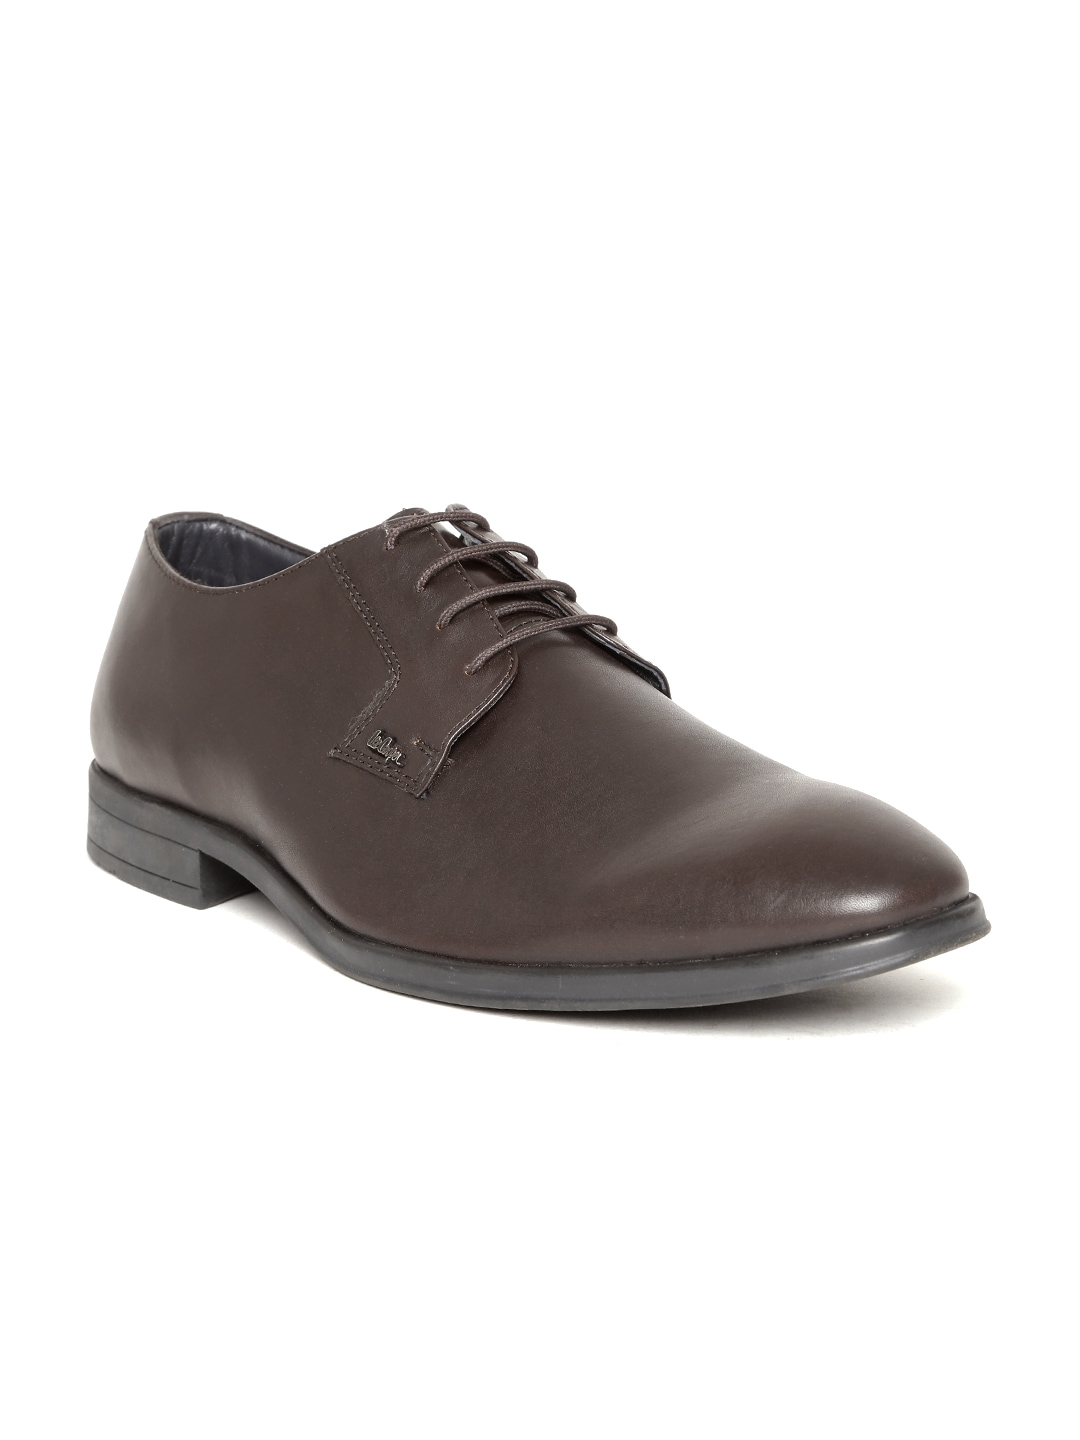 35c9f9d3af Lee cooper lc2173-brown Men Coffee Brown Genuine Leather Formal Shoes-  Price in India